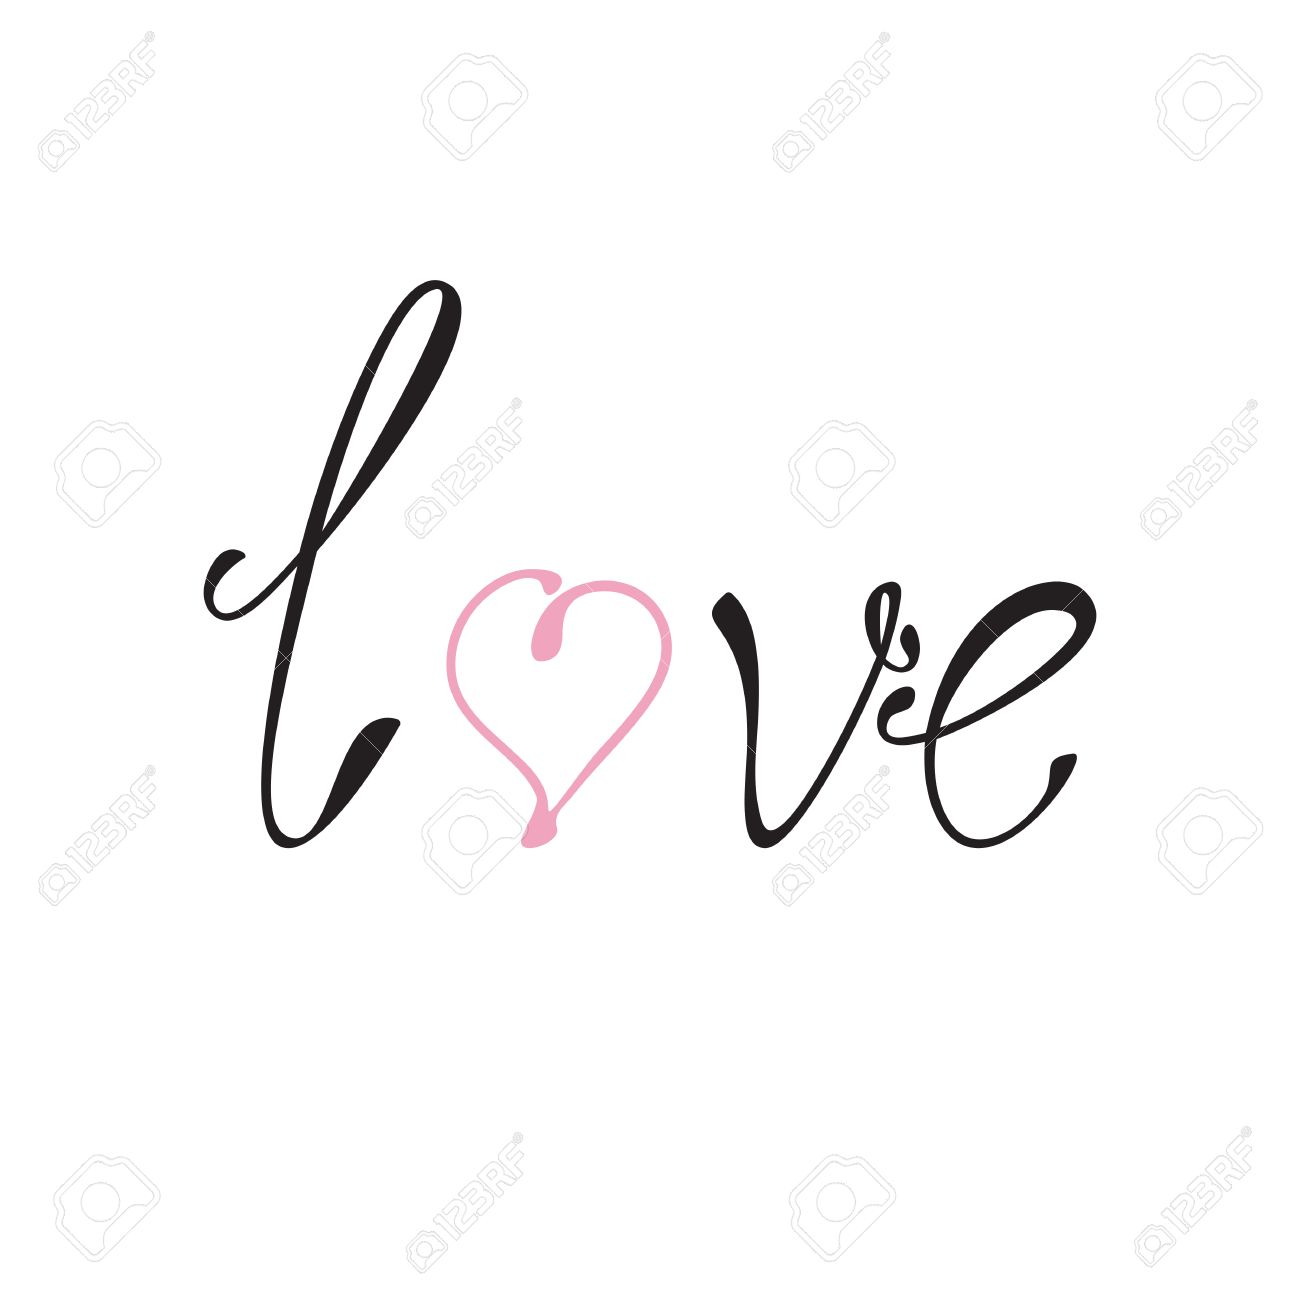 Black Colored Lettering Love With Pink Letter O In The Shape